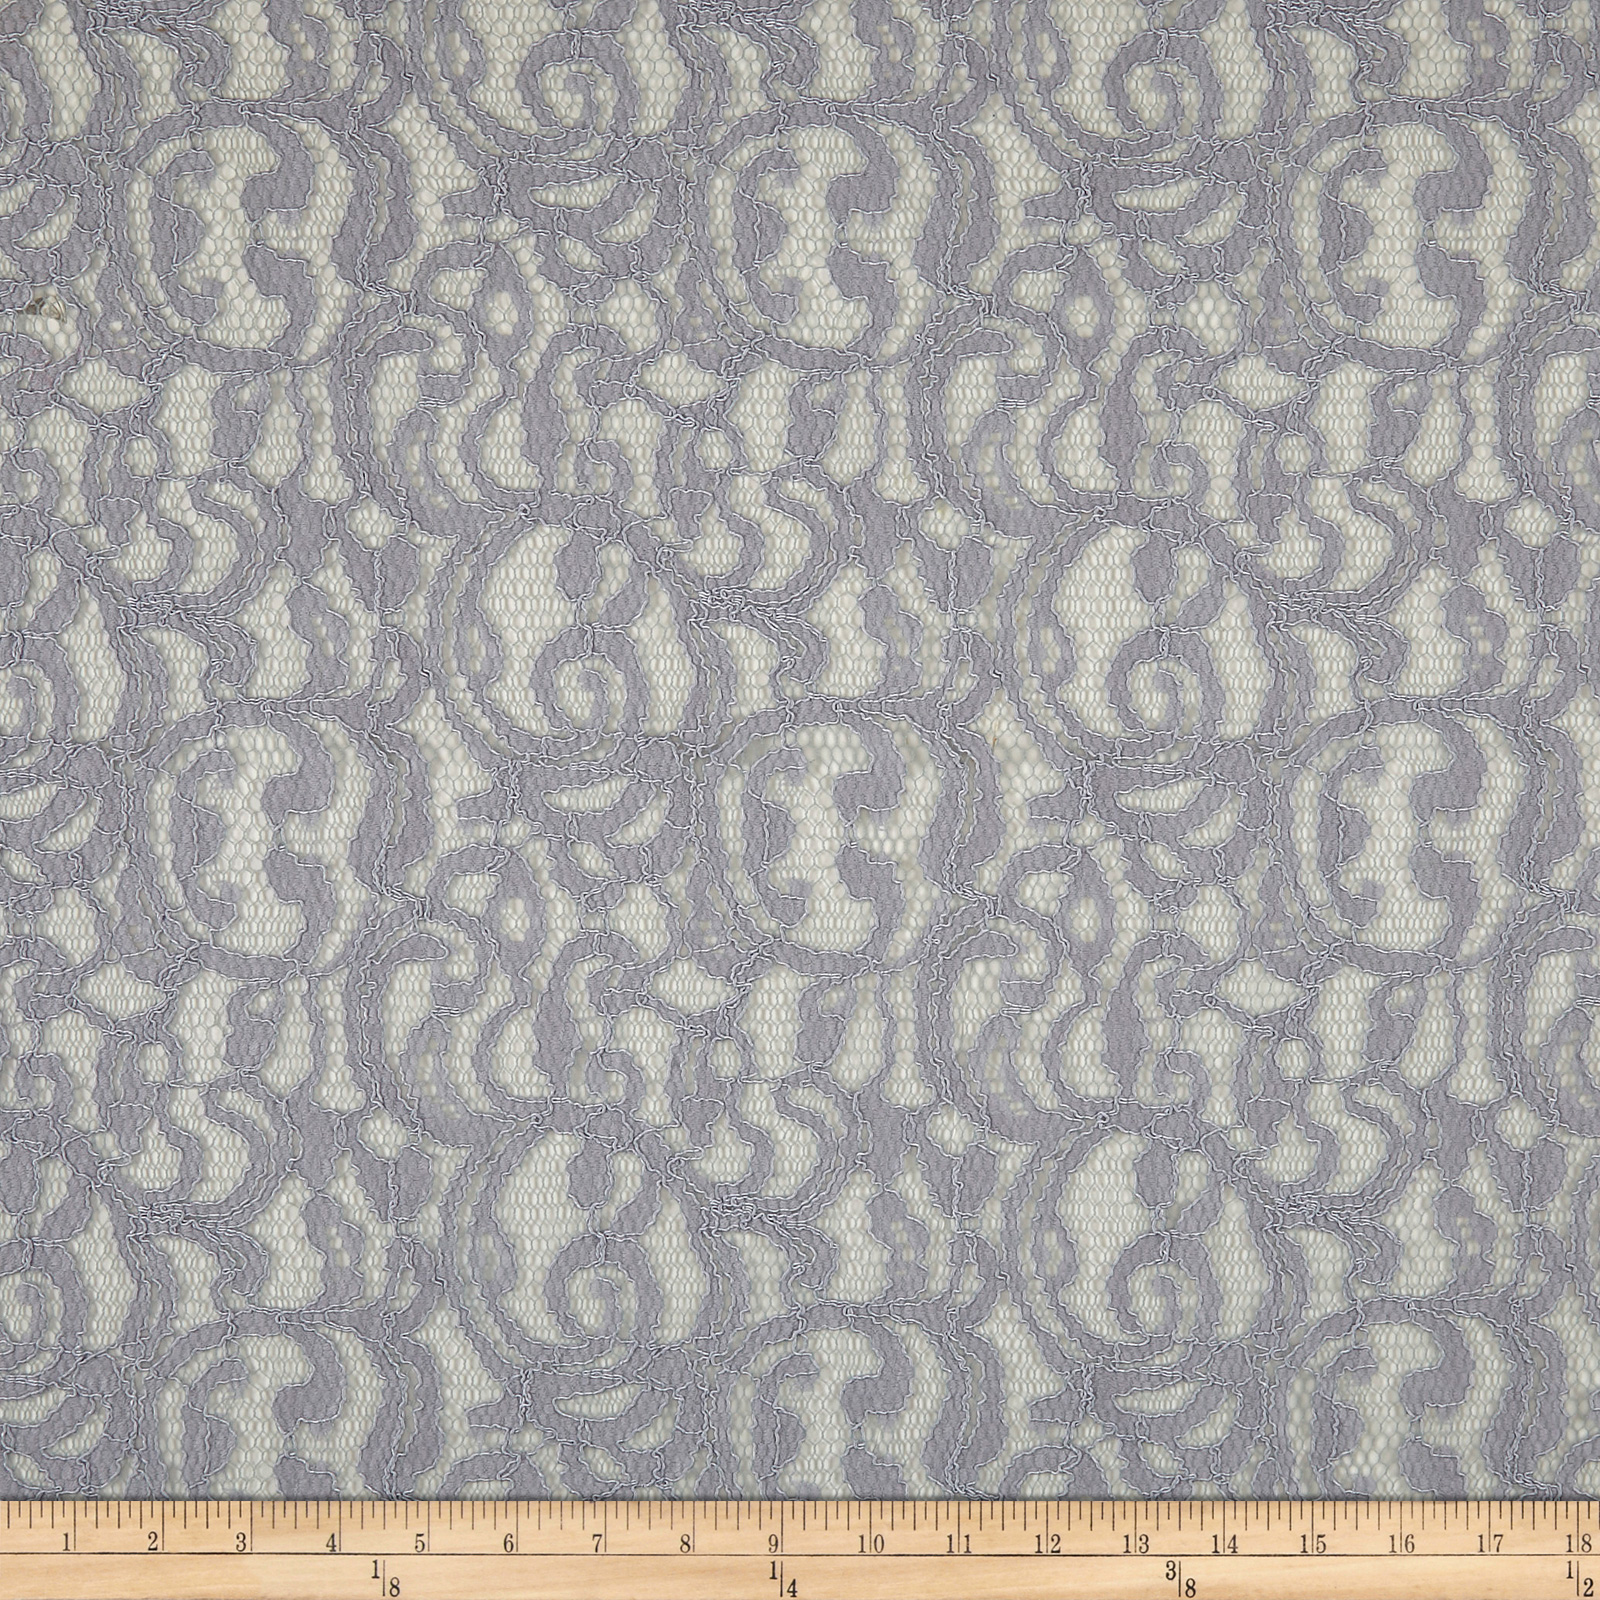 Scrolls Corded Lace Gray Fabric